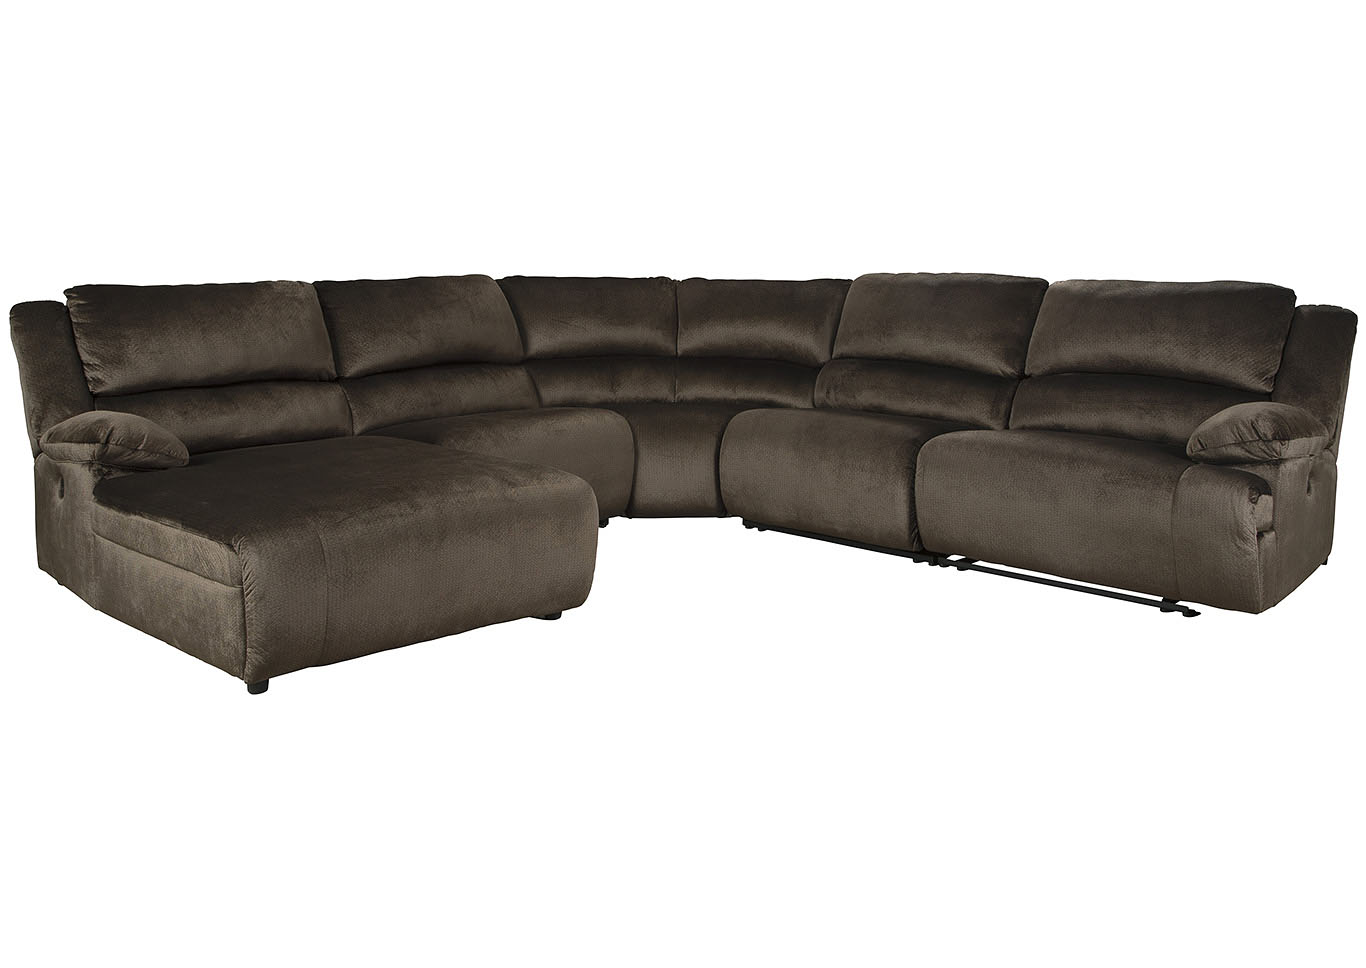 Clonmel Chocolate LAF Chaise Sectional,Signature Design By Ashley